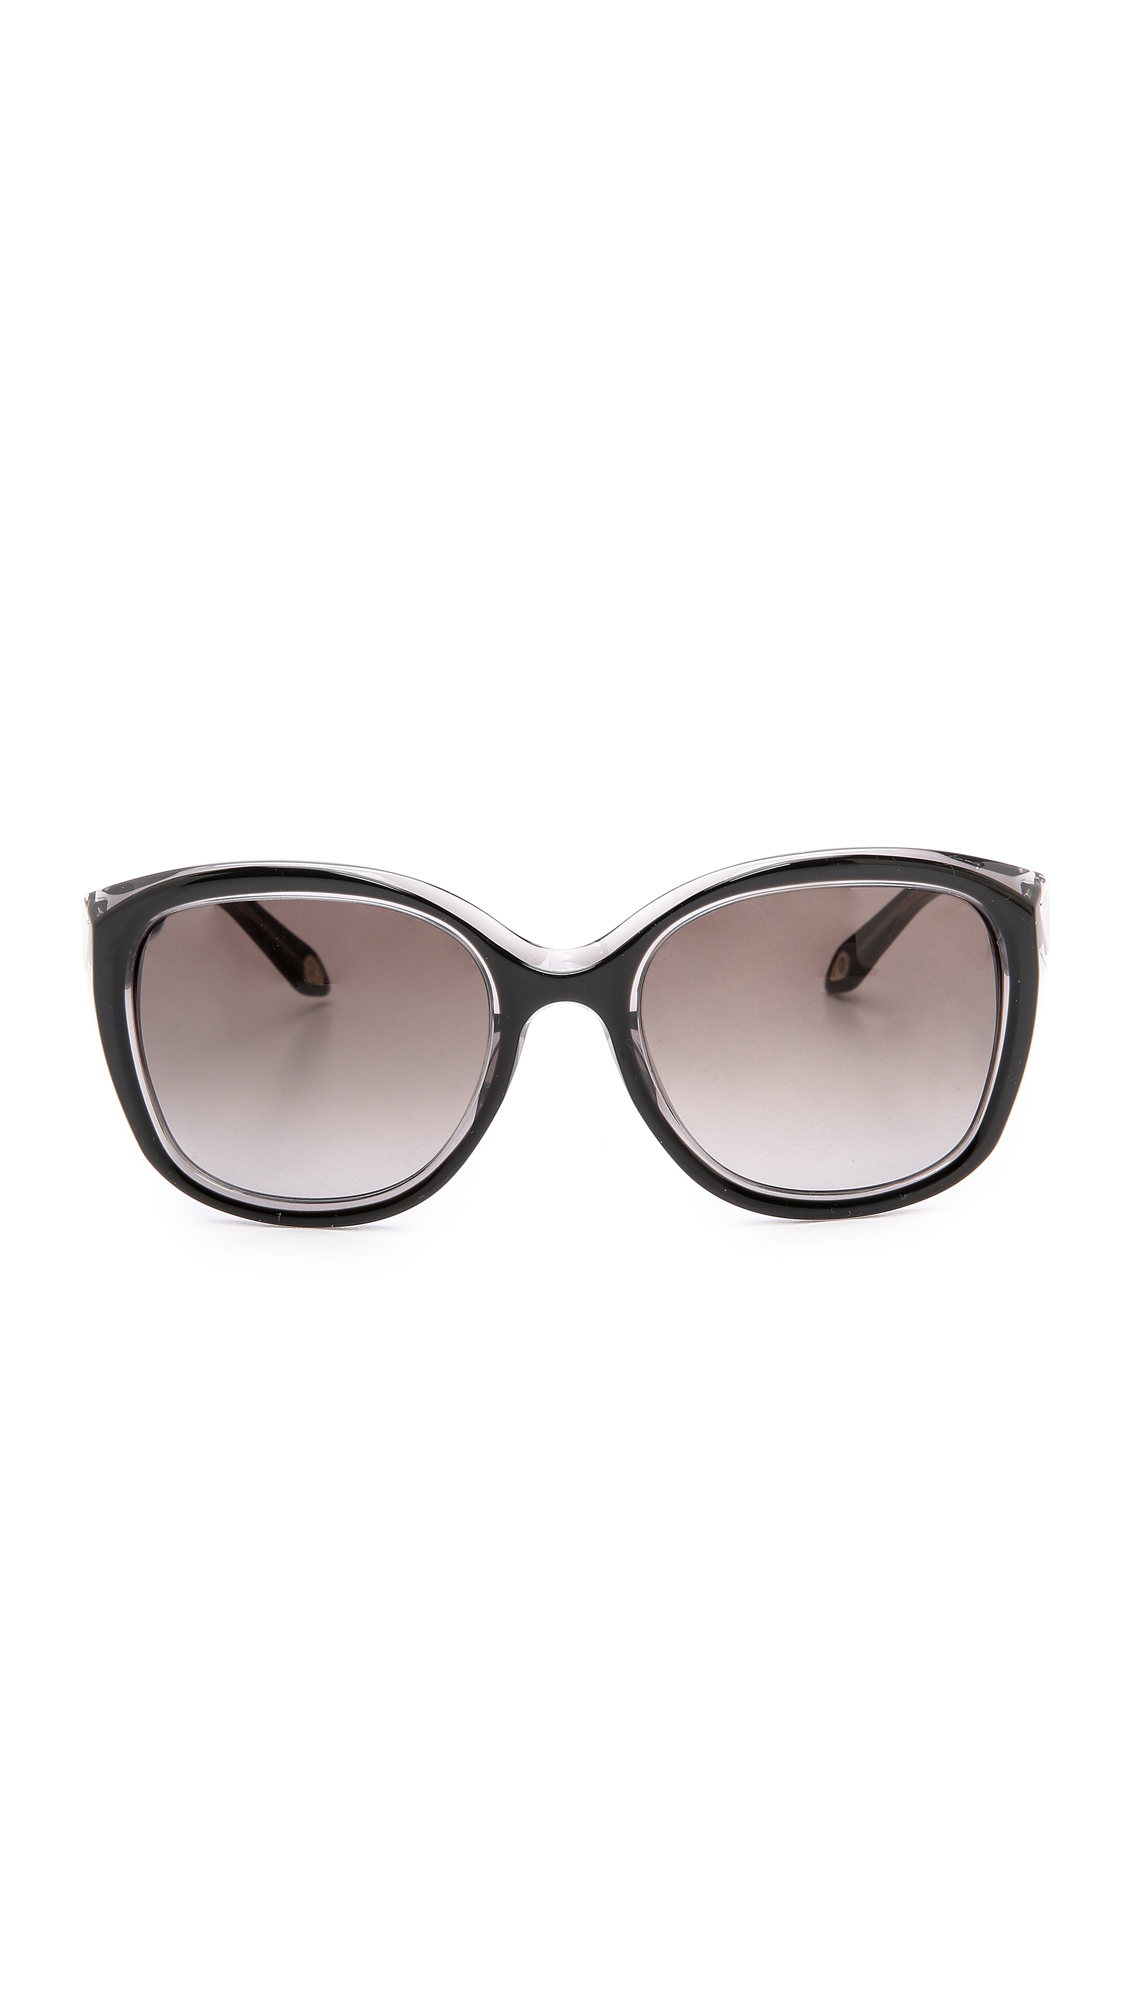 givenchy frames dvfw  Gallery